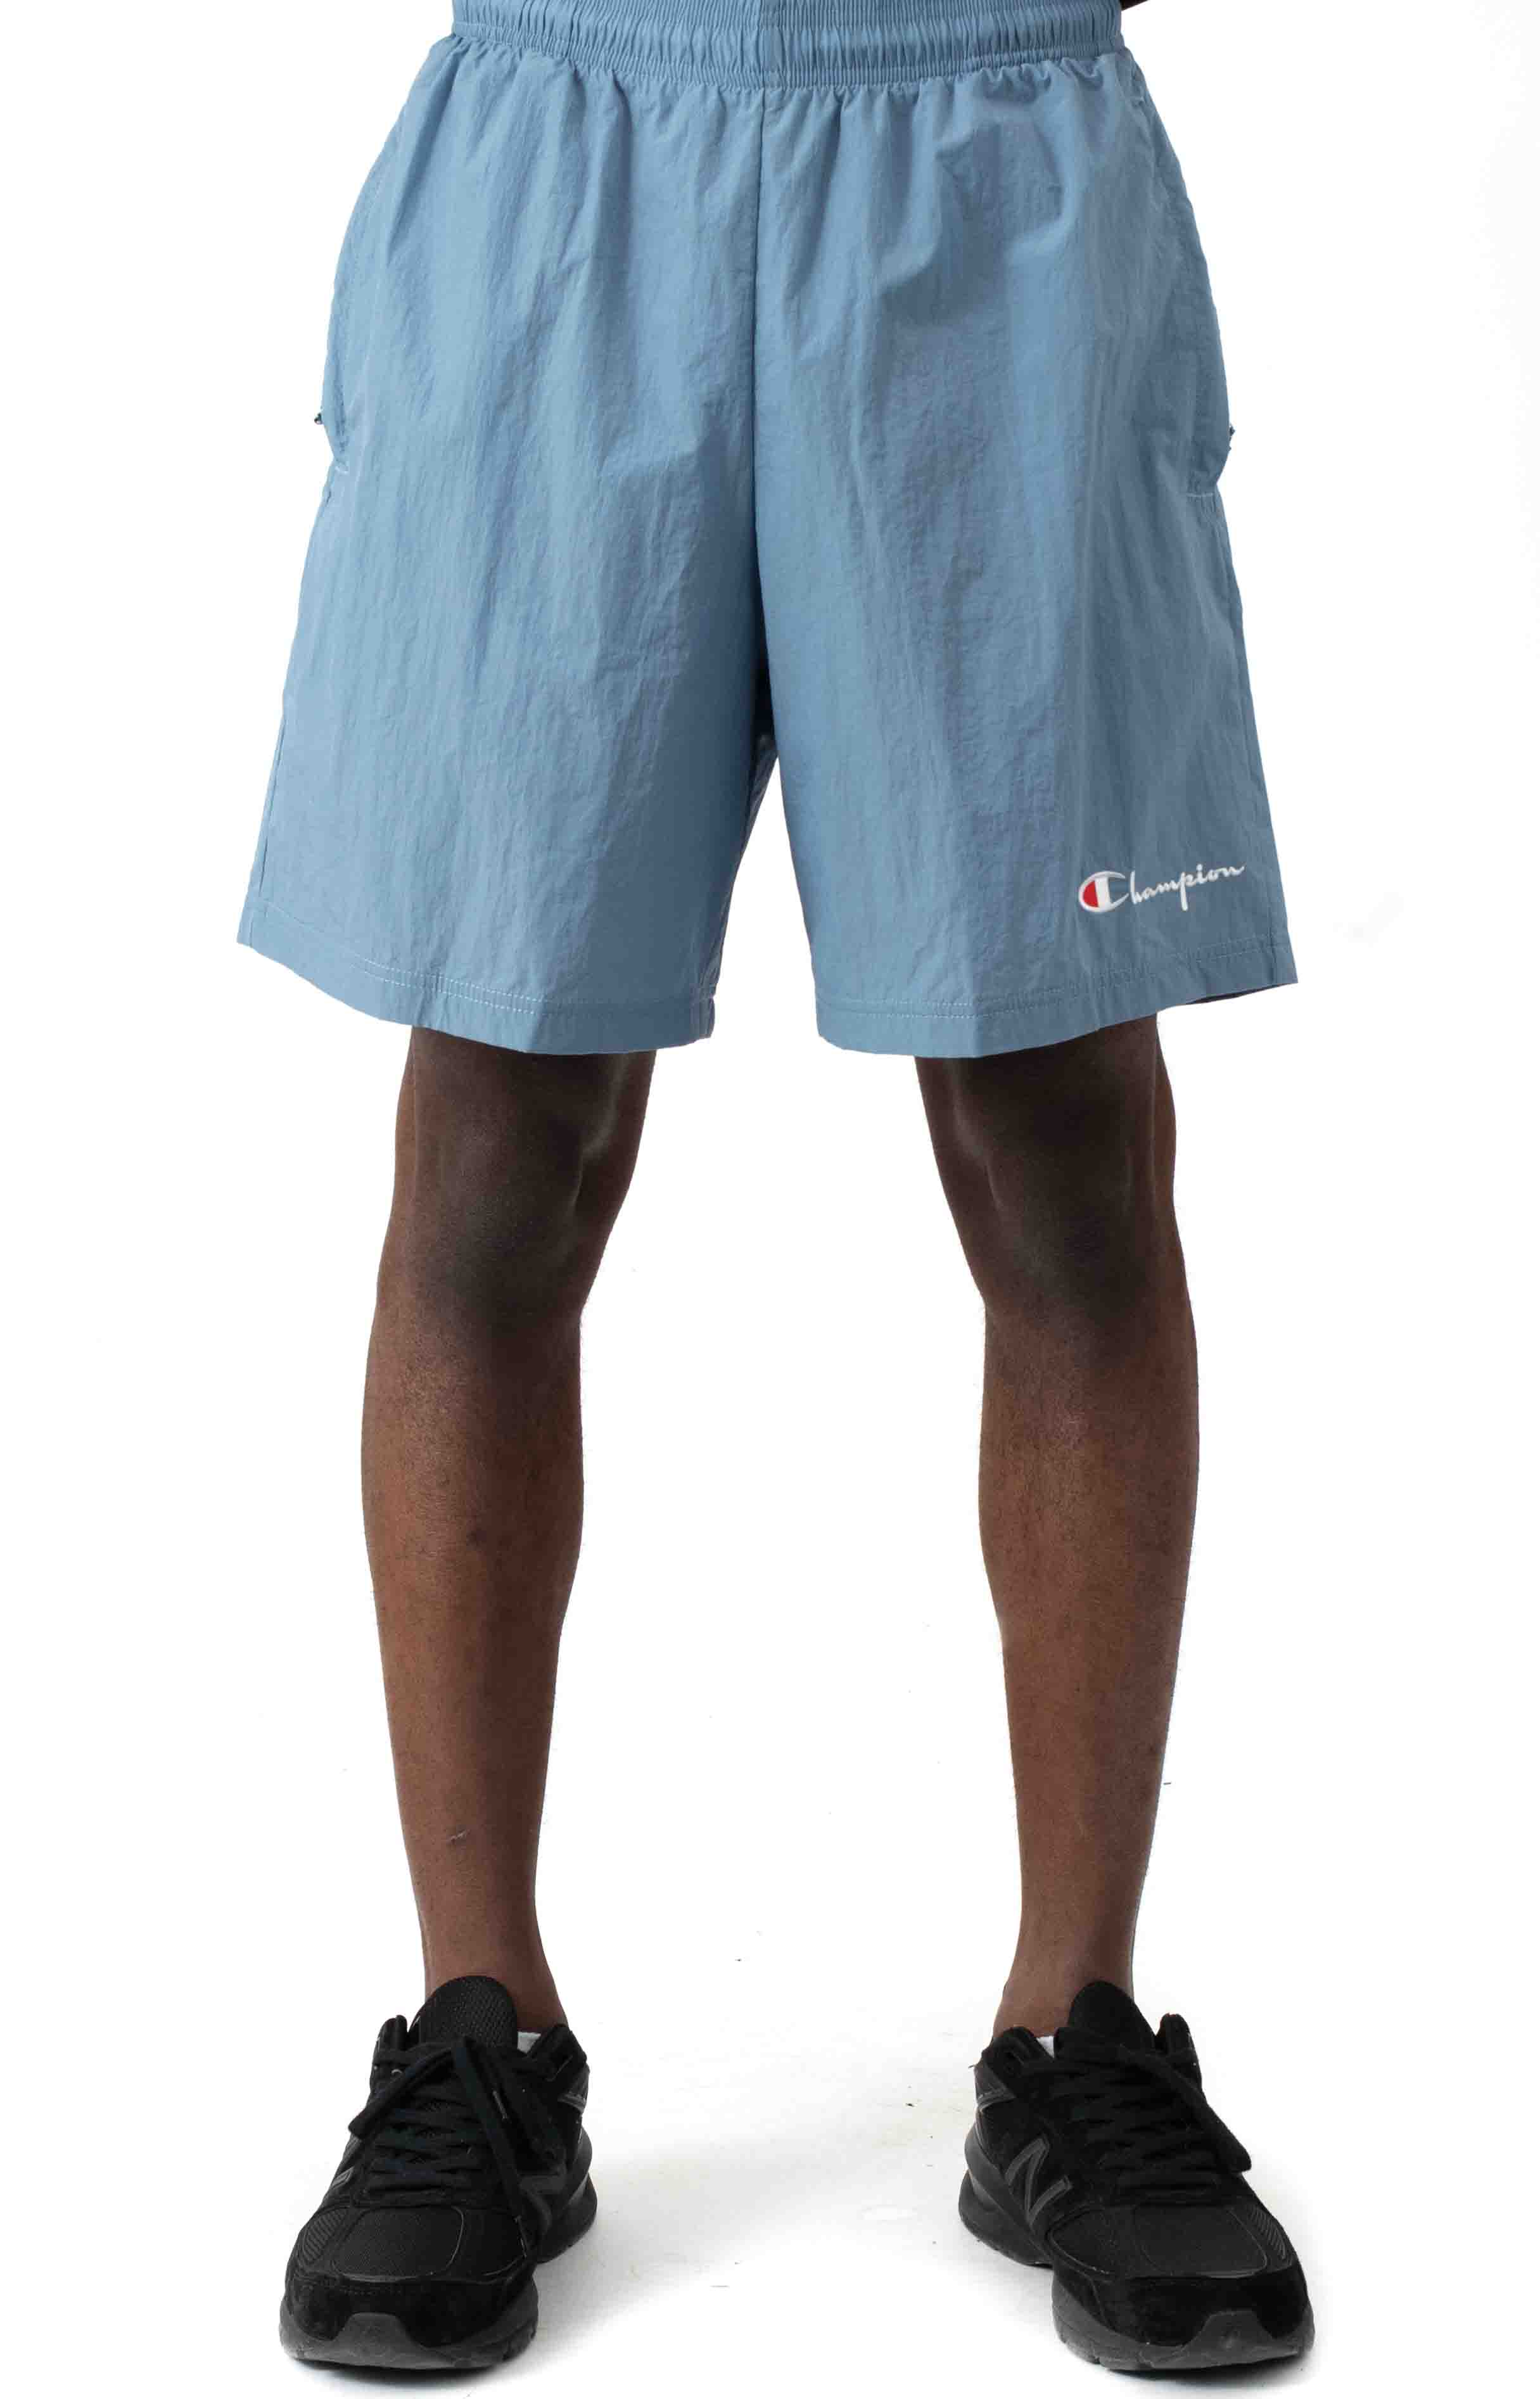 6-Inch Nylon Warm Up Shorts - Wildflower Pale Blue  2